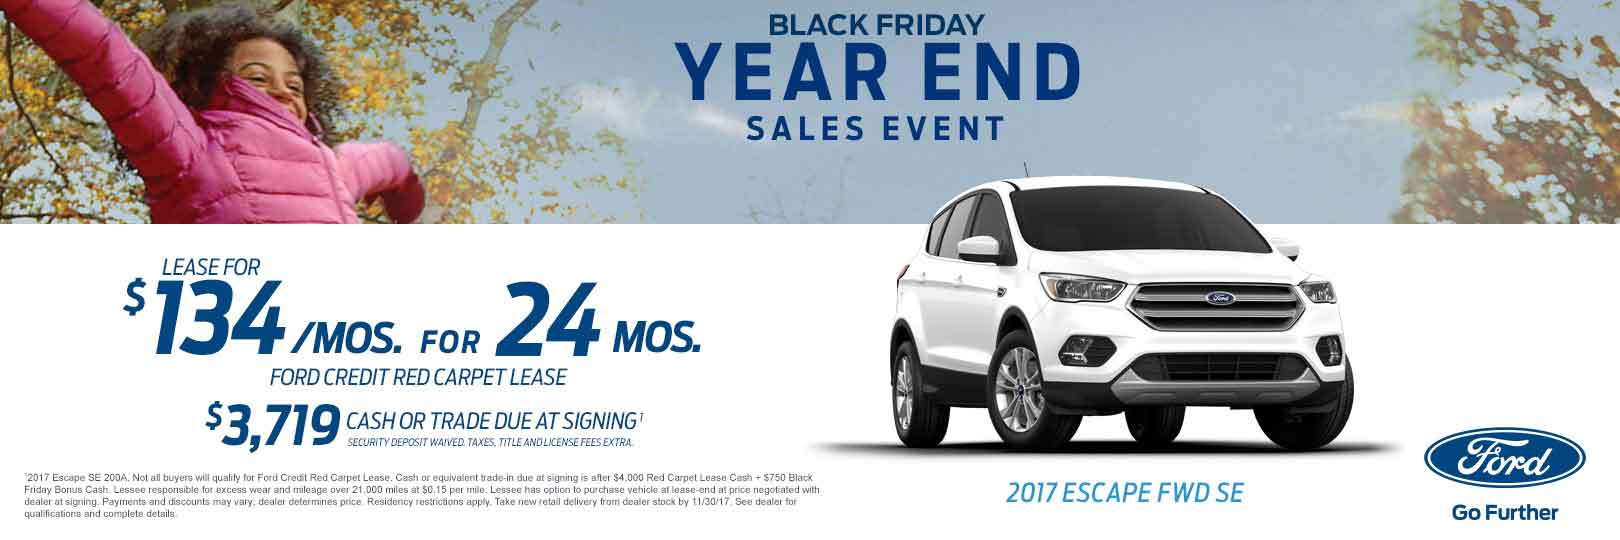 Ford Black Friday Year End Sales Event At Ray Price Stroud Ford